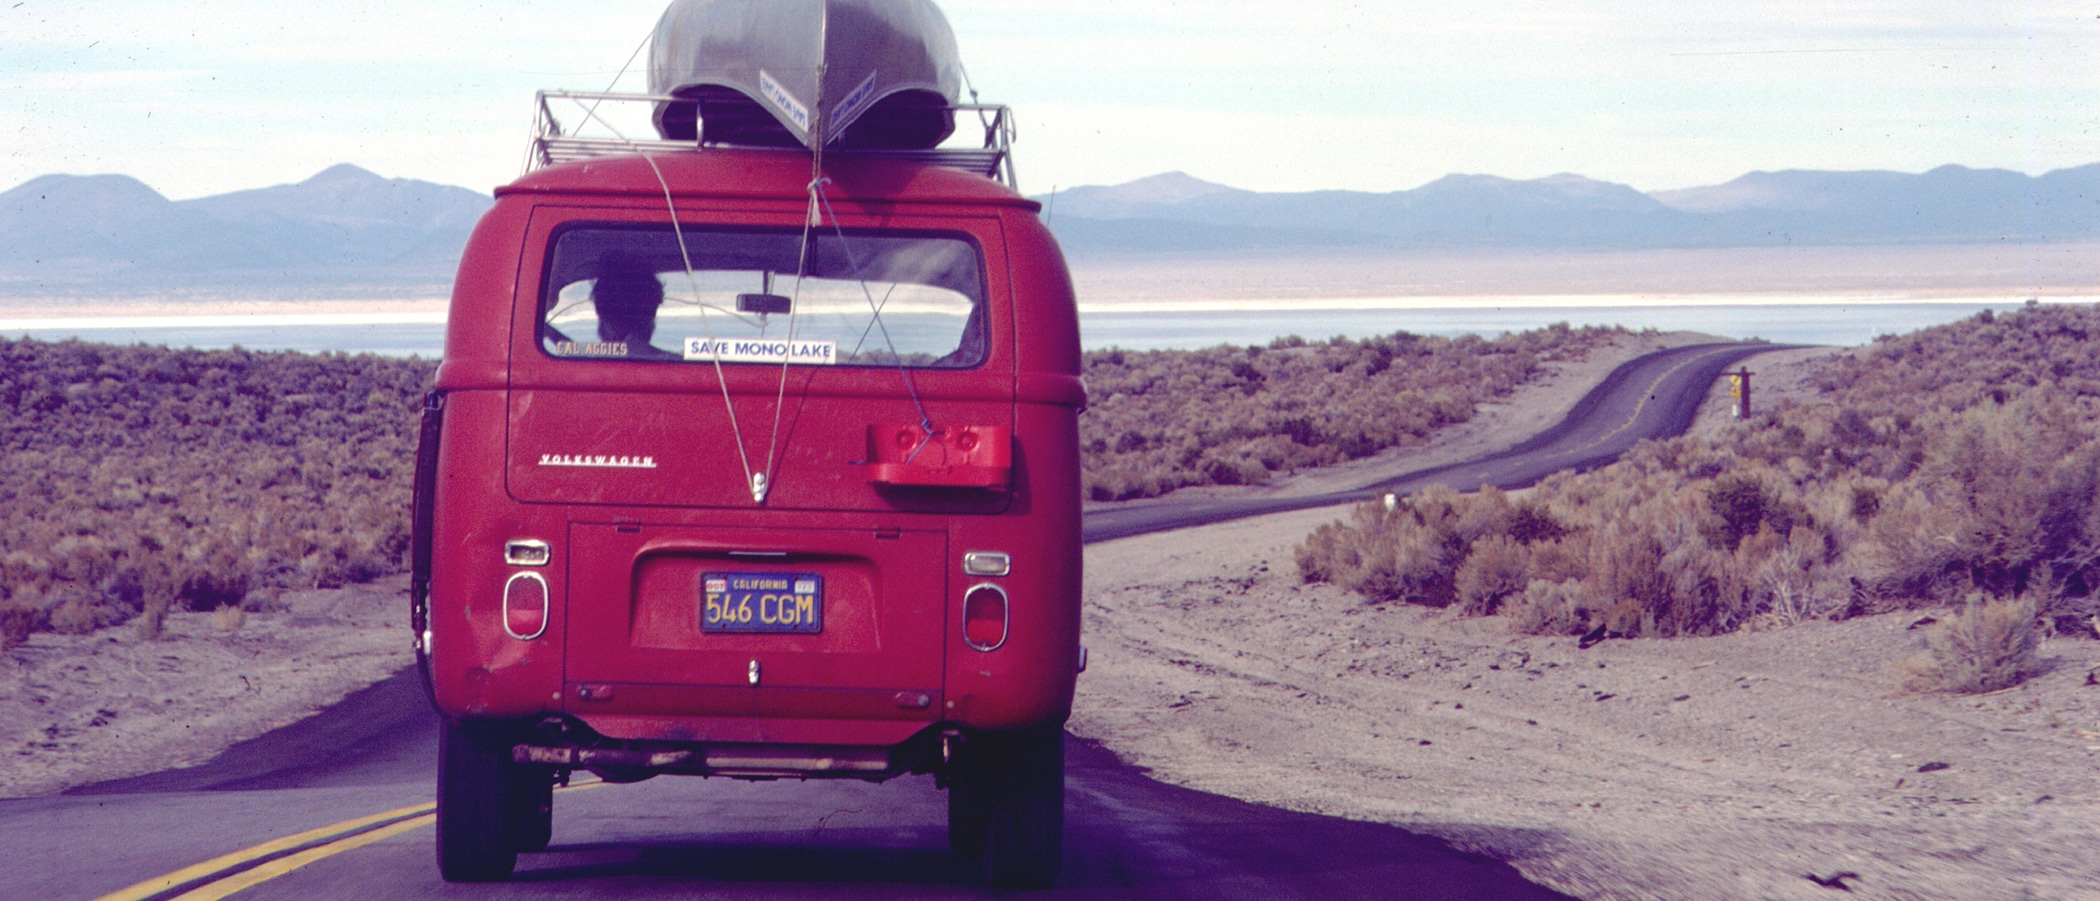 The back of a red bus with a canoe on the roof and a Mono Lake Sticker drives down the road towards the lake.